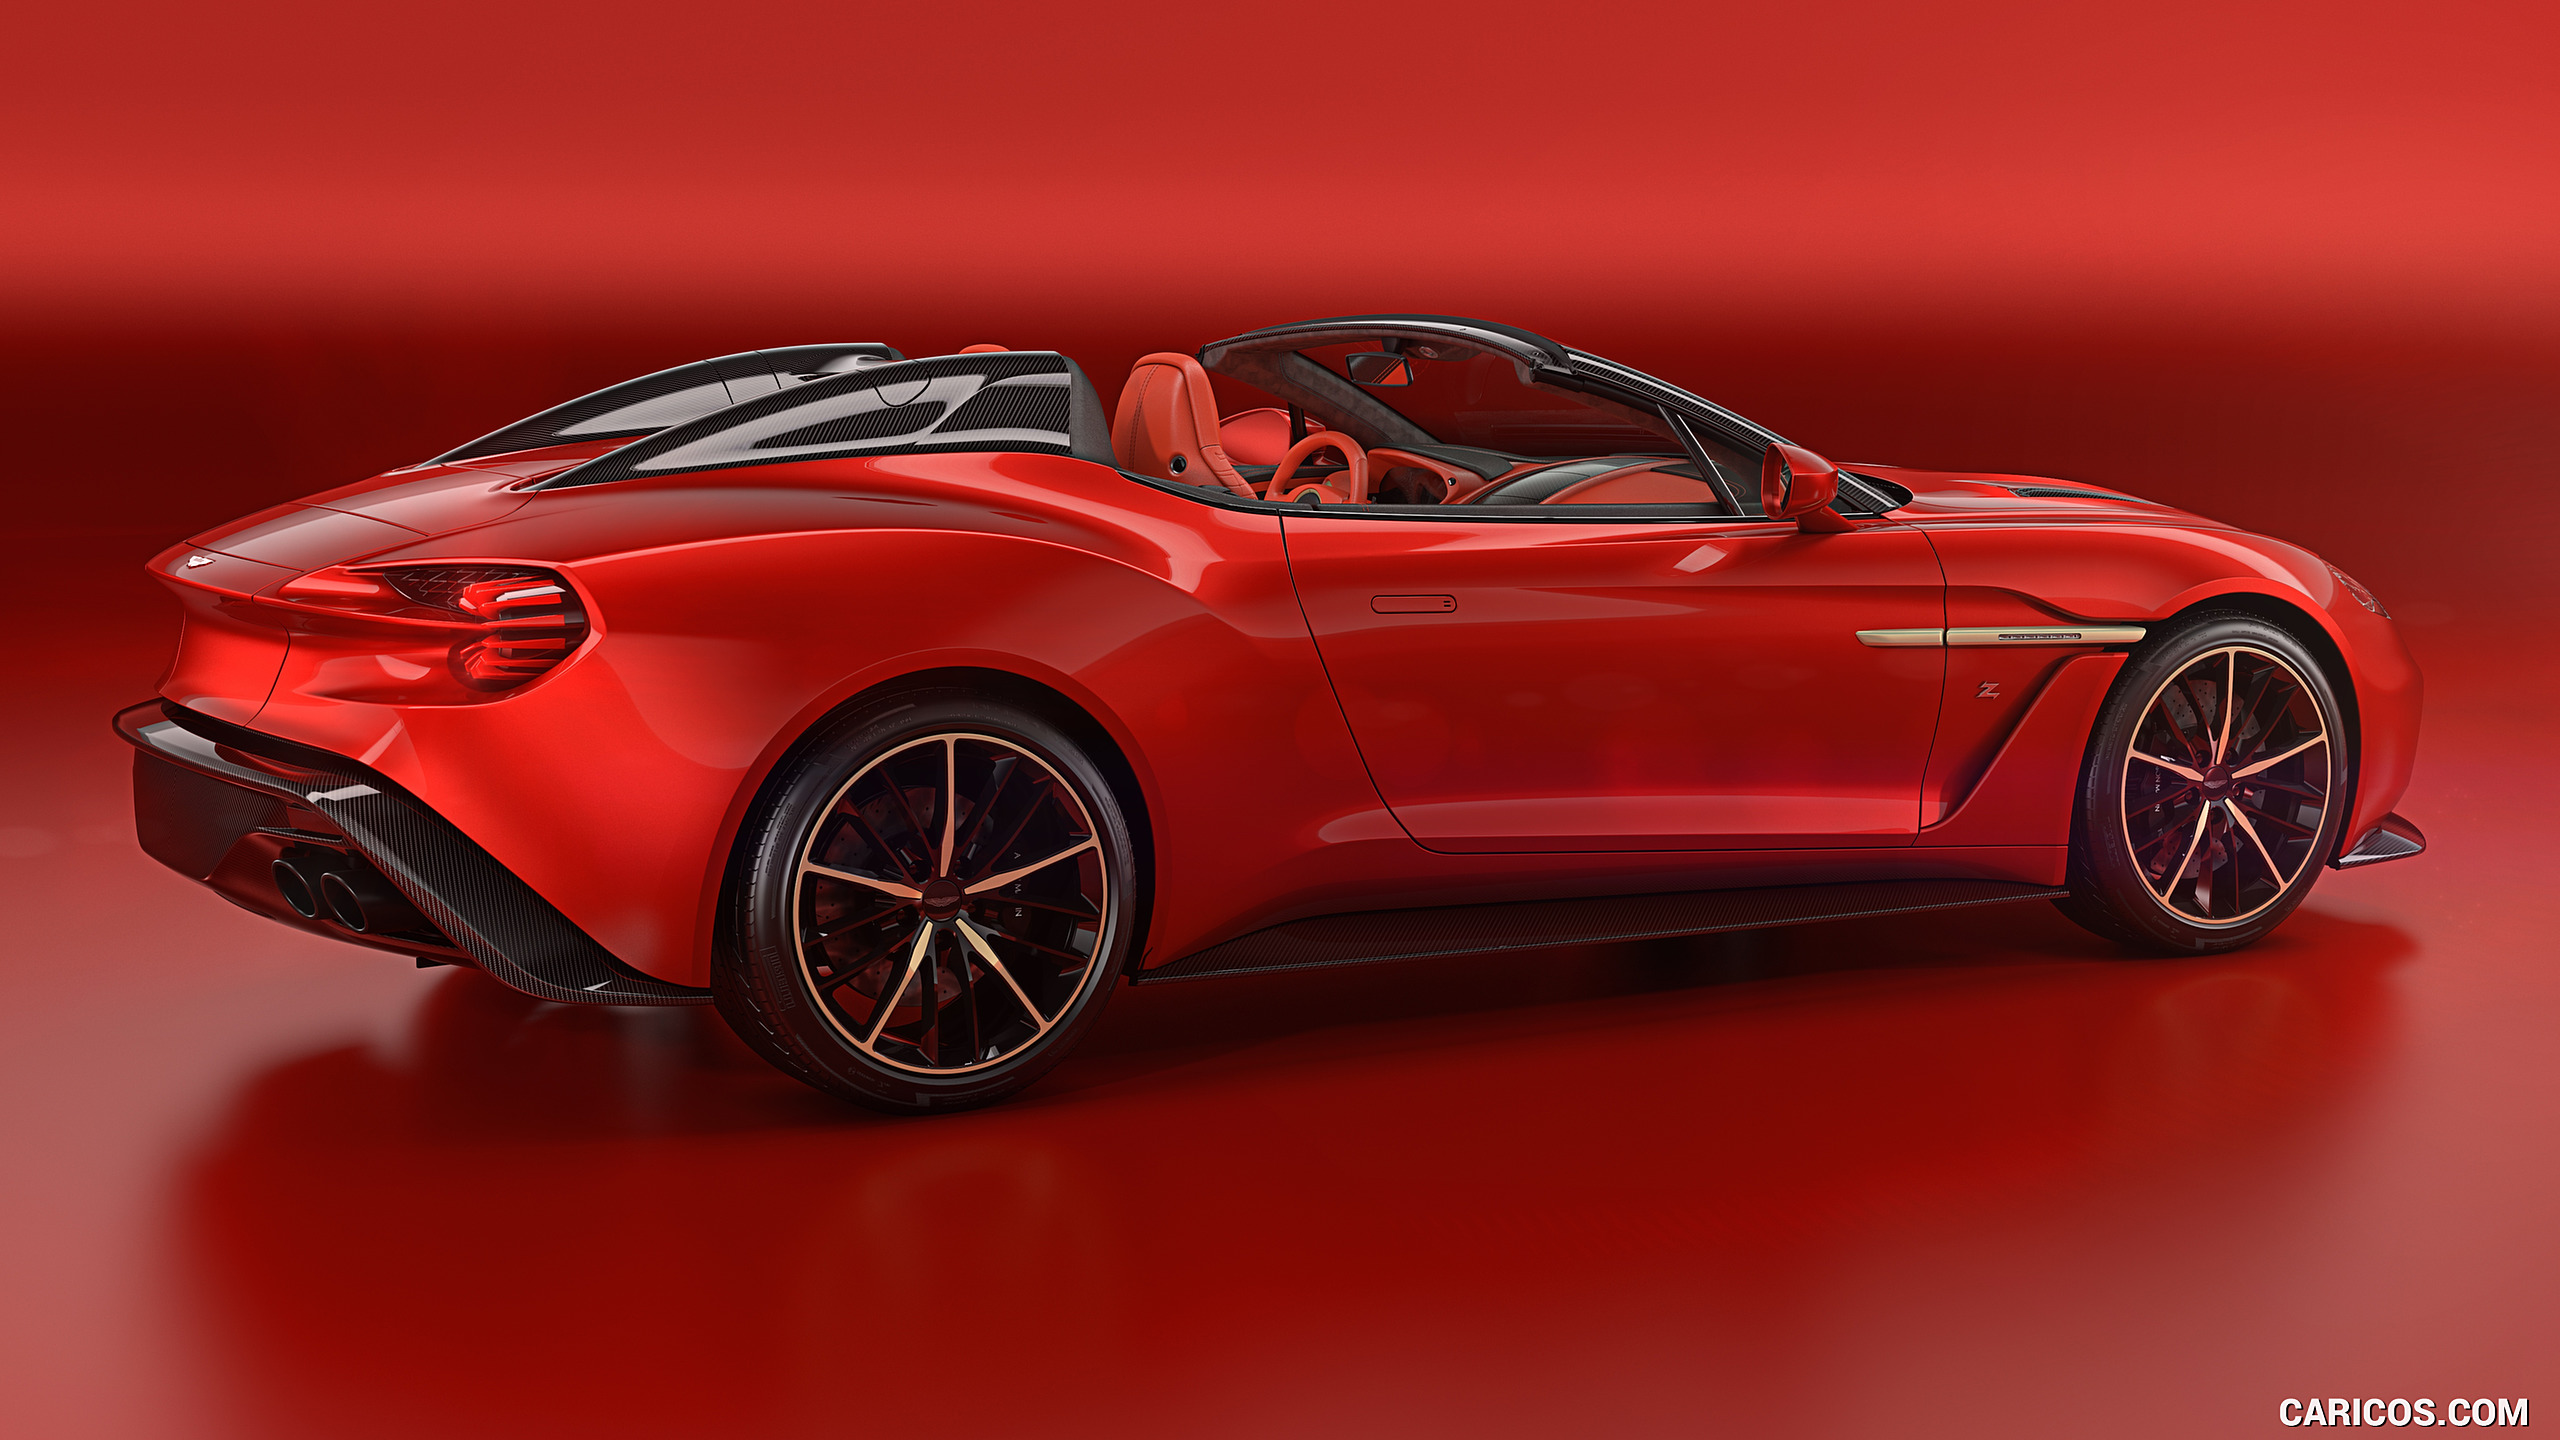 2018 Aston Martin Vanquish Zagato Speedster   Rear Three Quarter 2560x1440